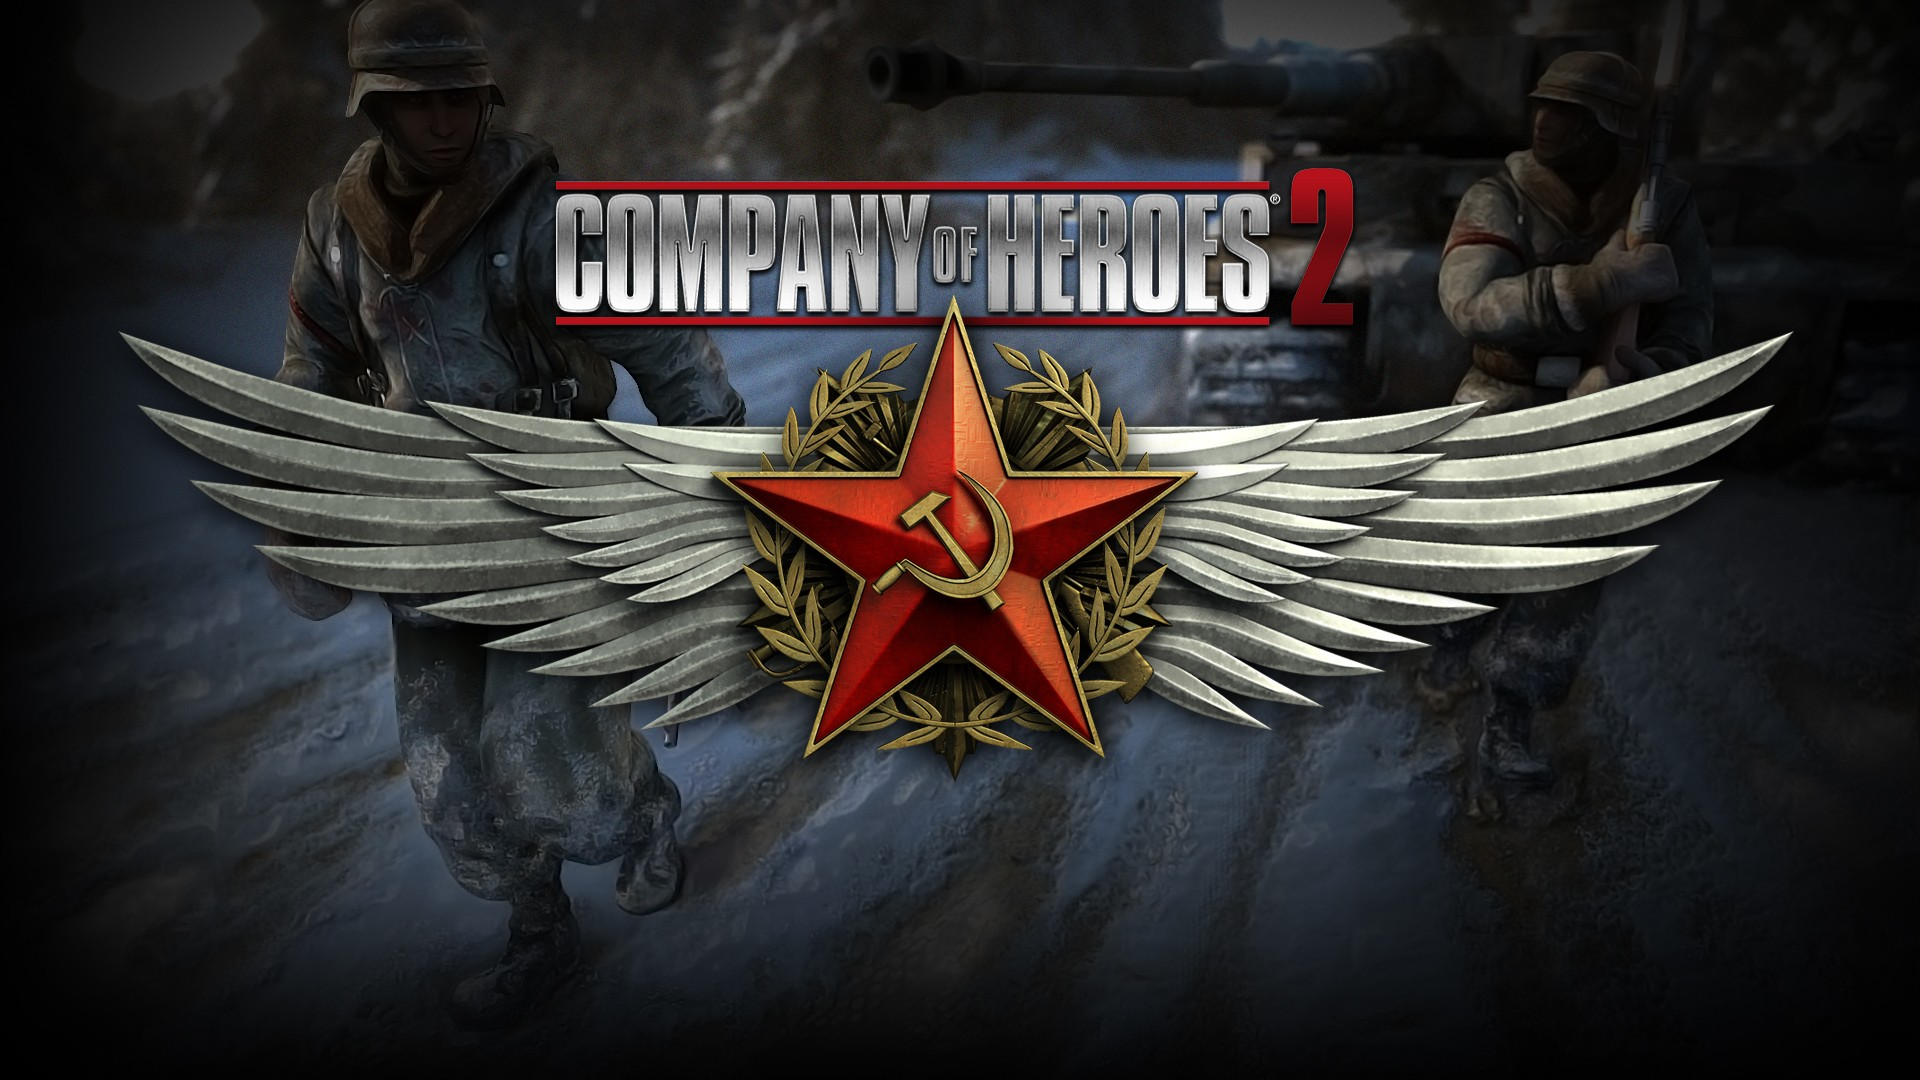 Company Of Heroes 2 Hd Wallpaper Background Image